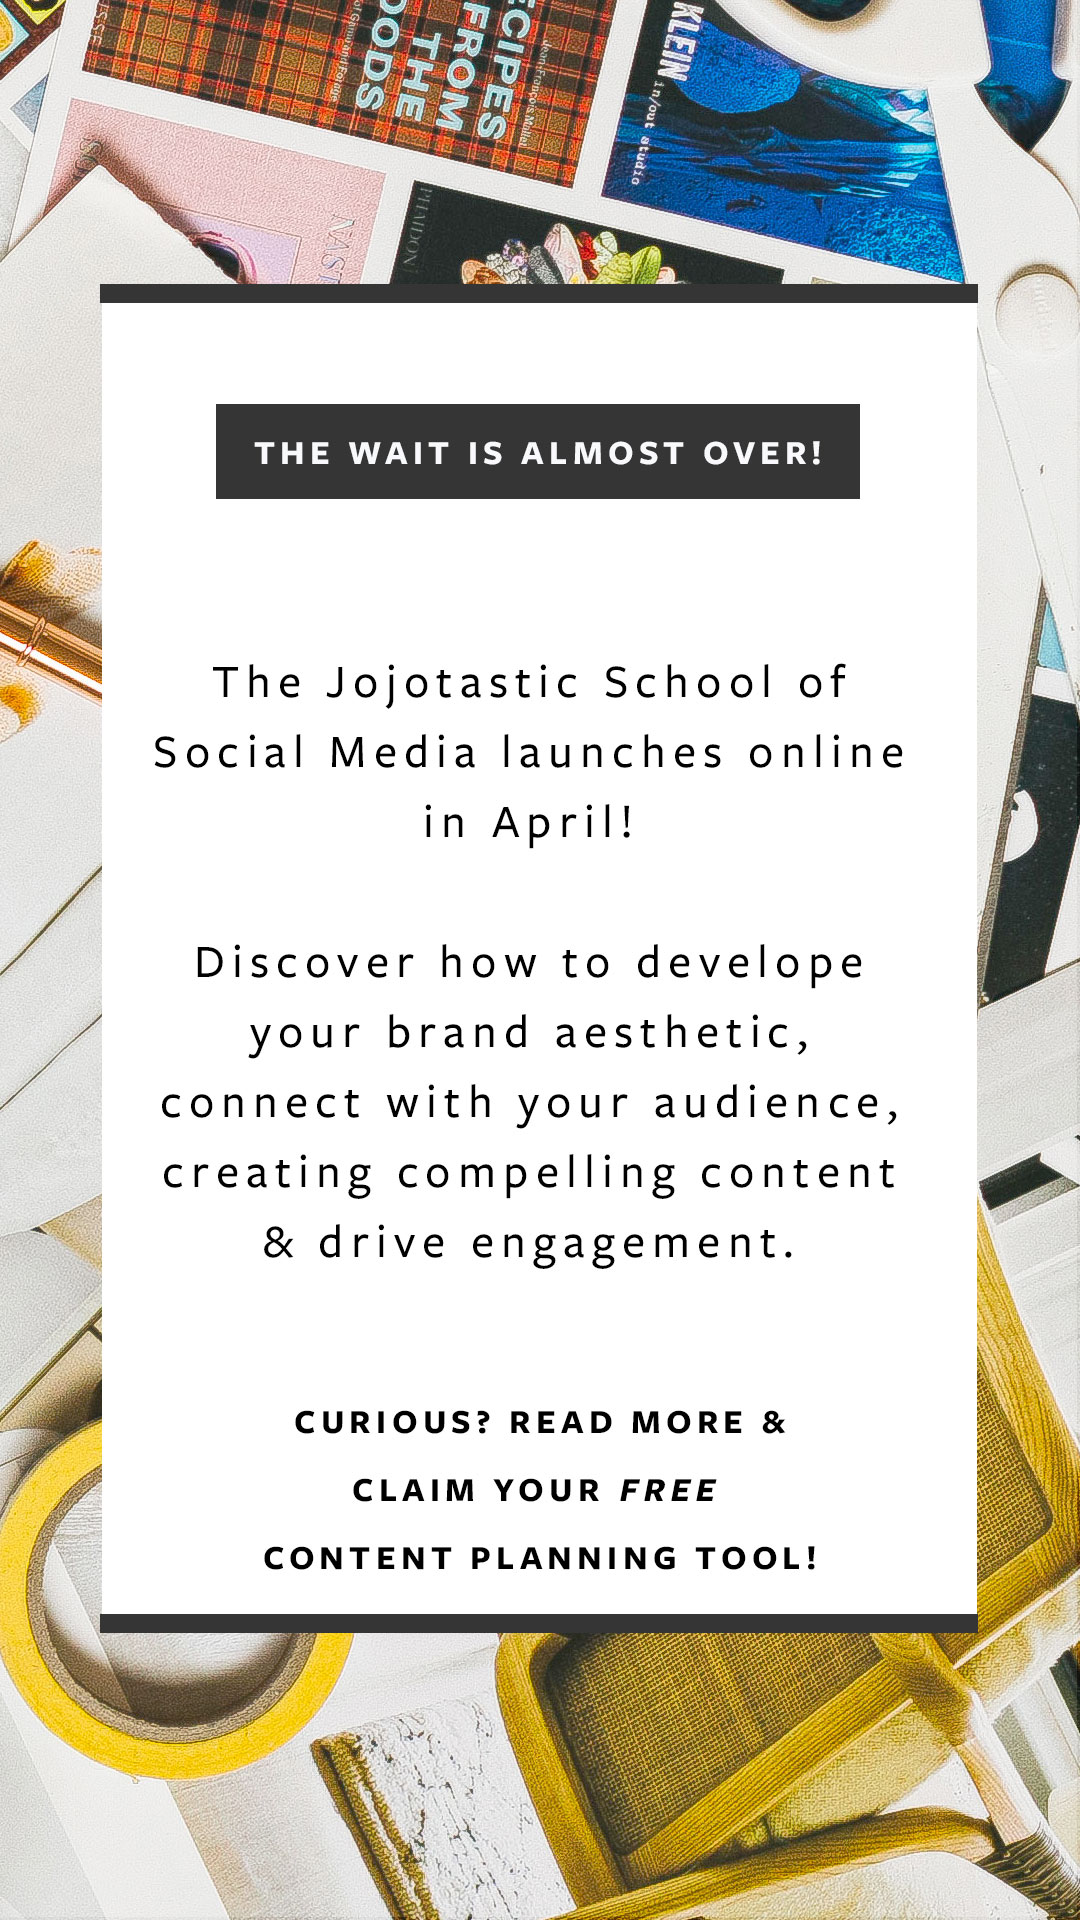 The Jojotastic School of Social Media Q&A, answering your questions about my new social media class. Ready to get serious and take your small business to the next level? This is the social media workshop for you! #pinterestclass #instagramclass #socialmediaclass #workshop #socialmediaworkshop #socialmediaforsmallbusinesses #smallbusiness